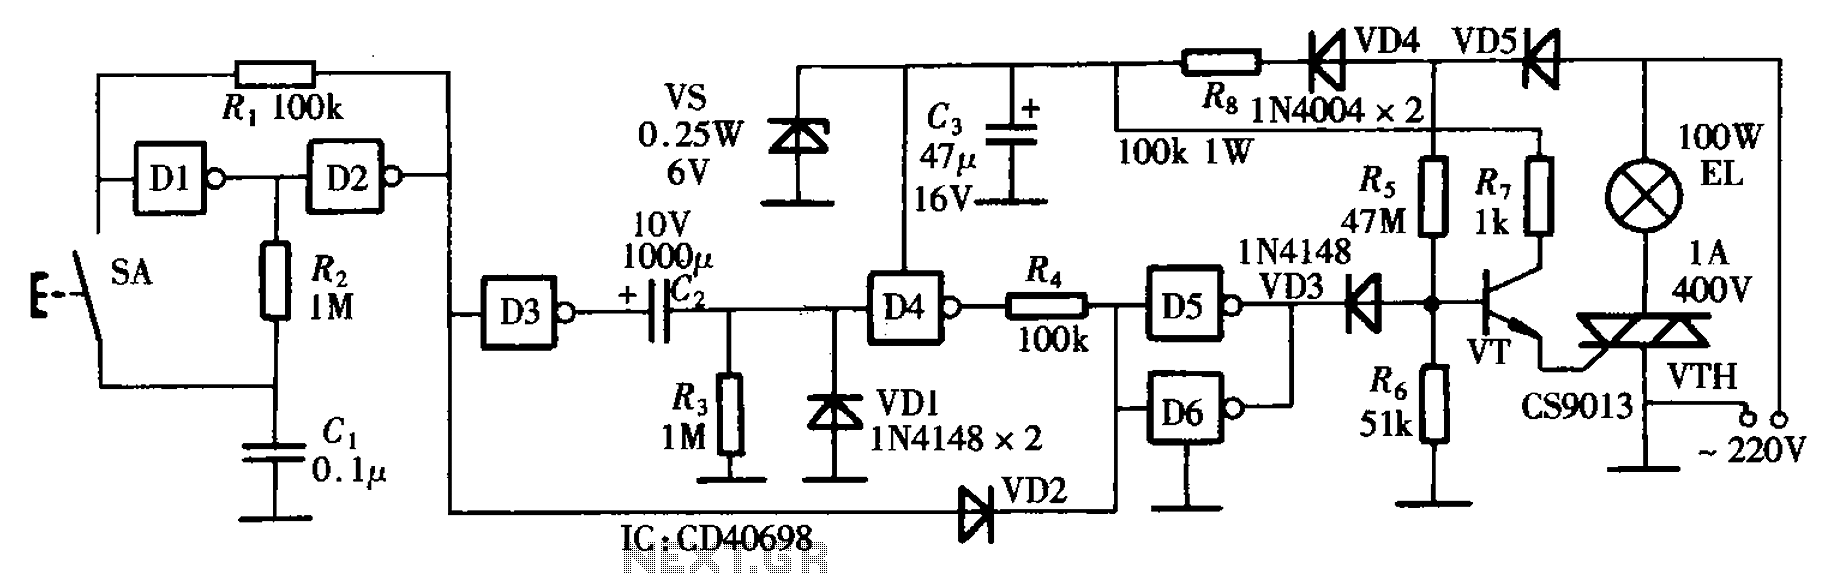 Bedside lamp gates as delay circuit - schematic